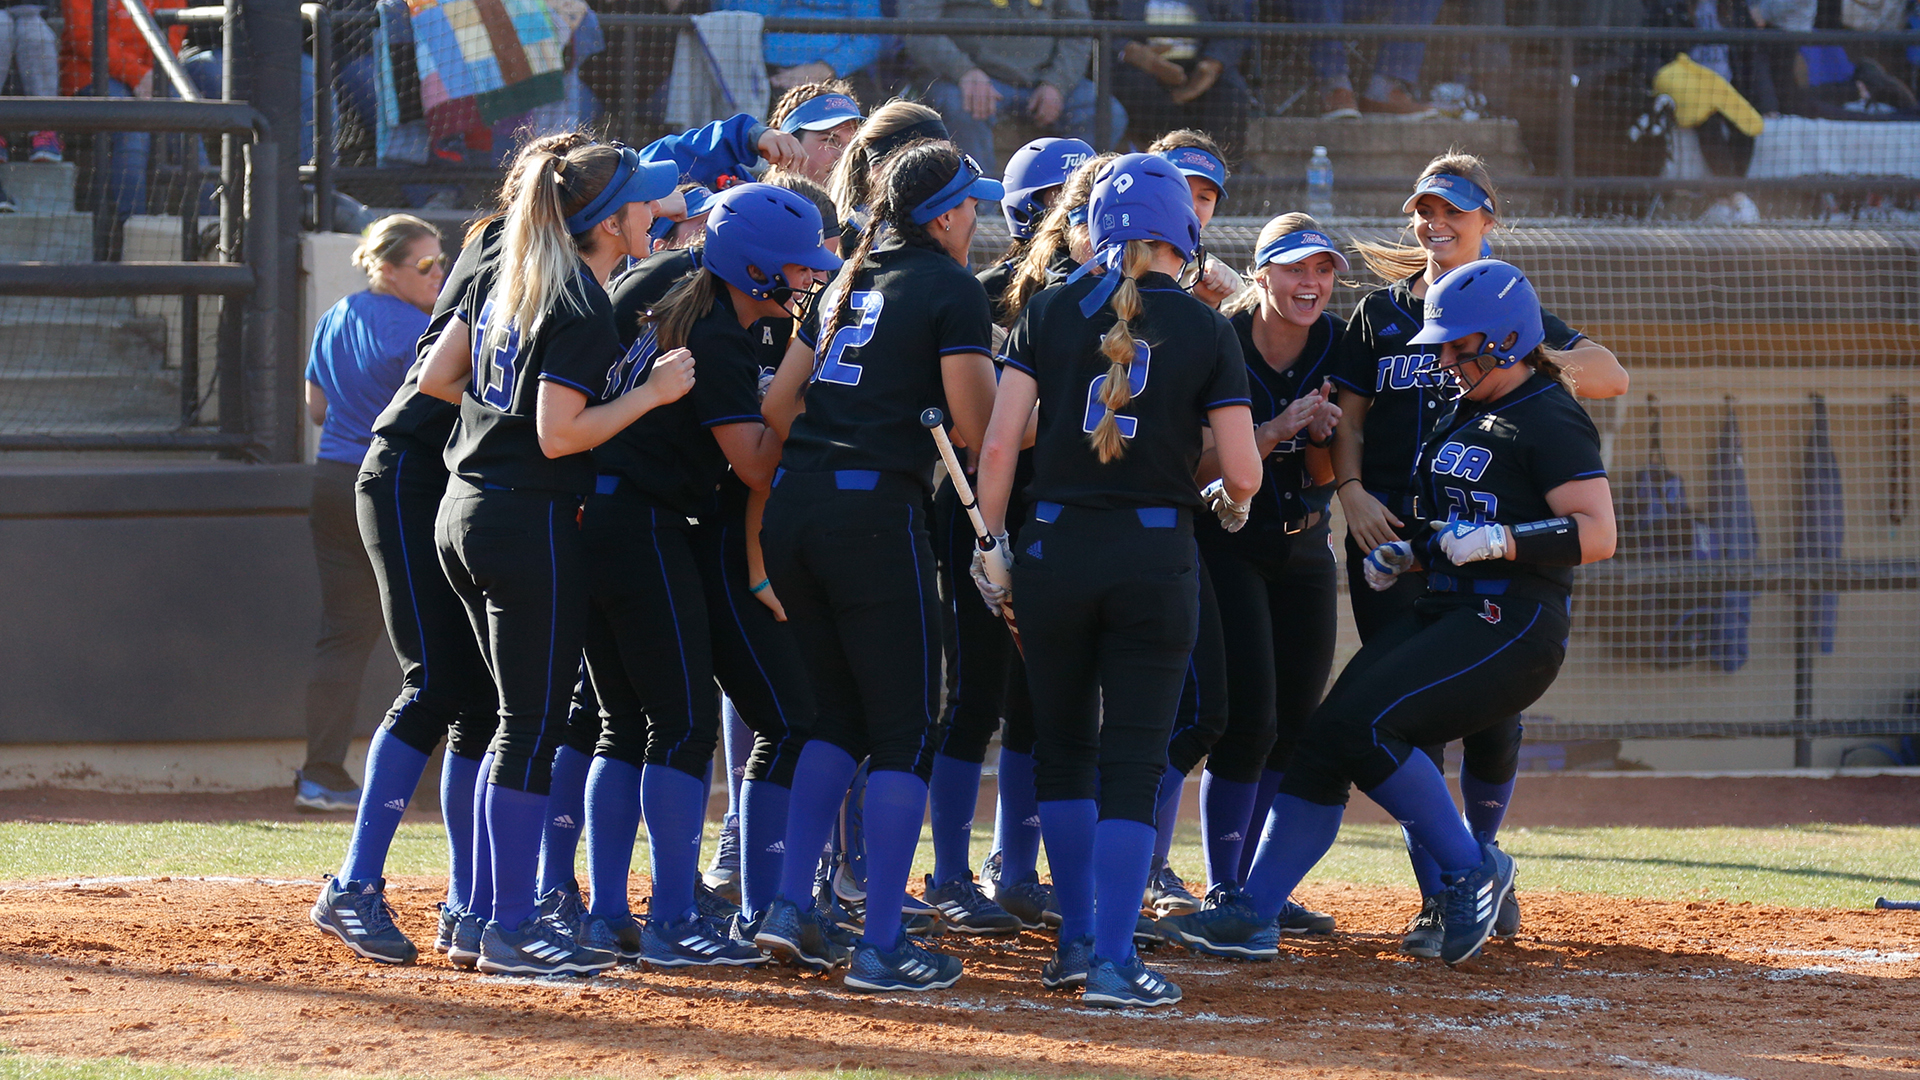 Tulsa Softball To Open Home Slate This Weekend University Of Tulsa